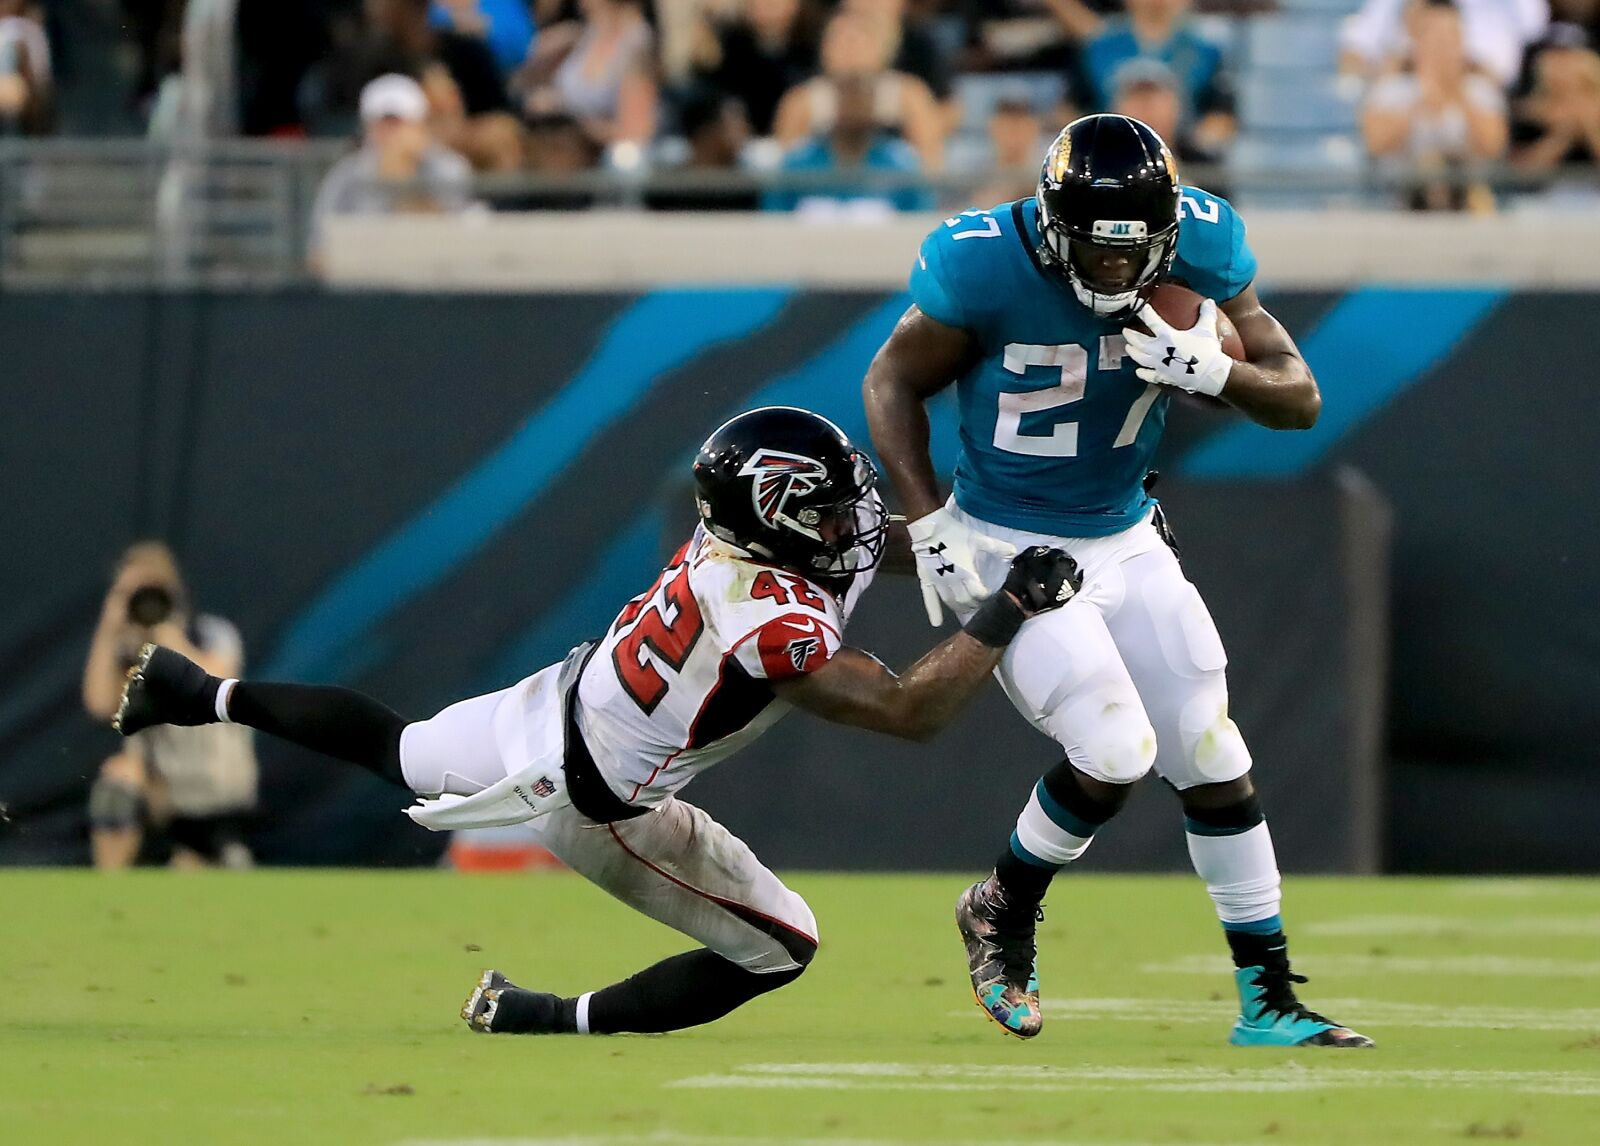 38359e0a The Jacksonville Jaguars Defense Smothered the Atlanta Falcons